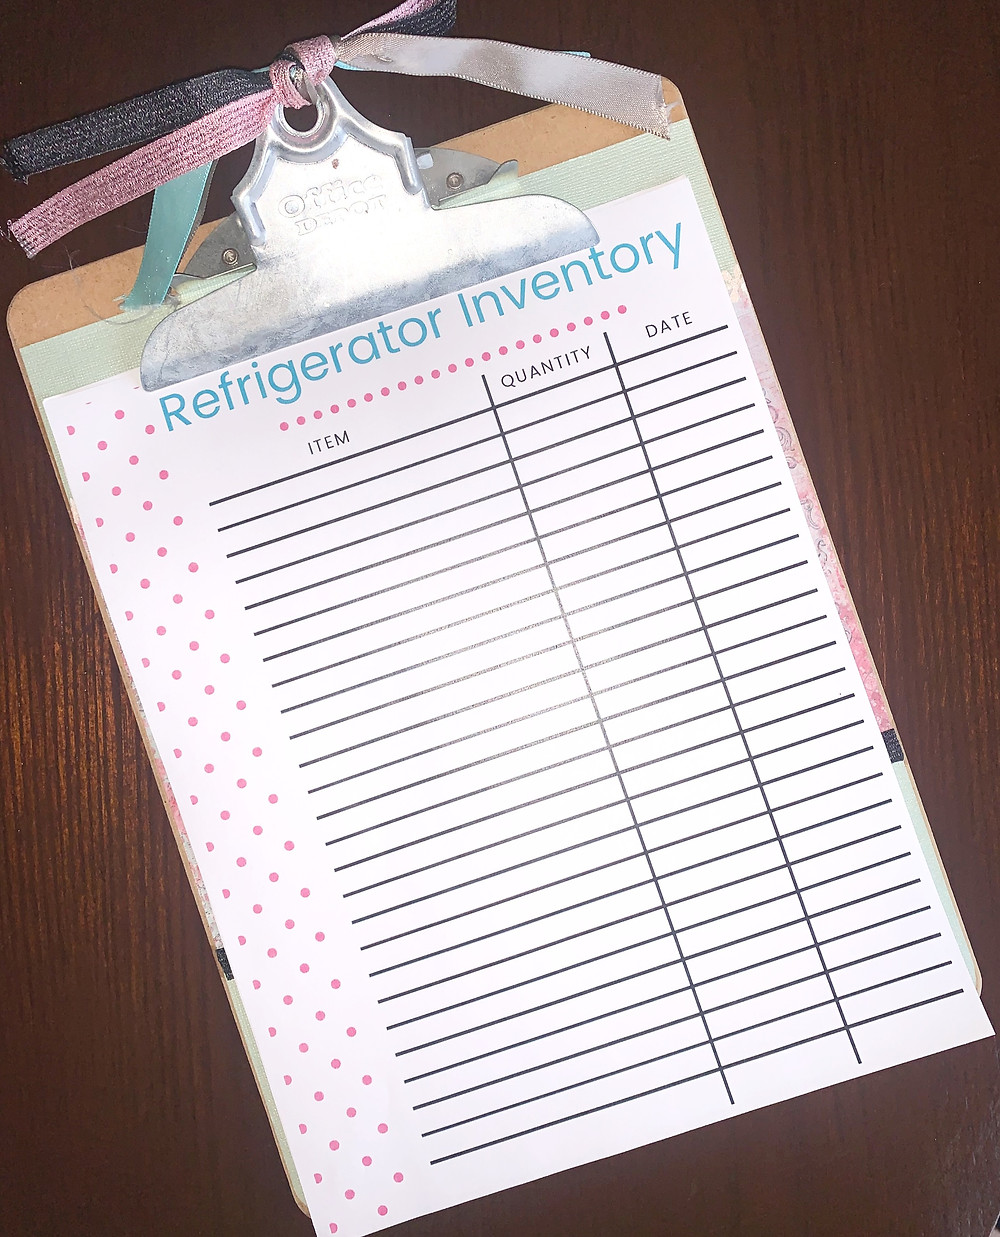 Printable refrigerator fridge food inventory on a clipboard